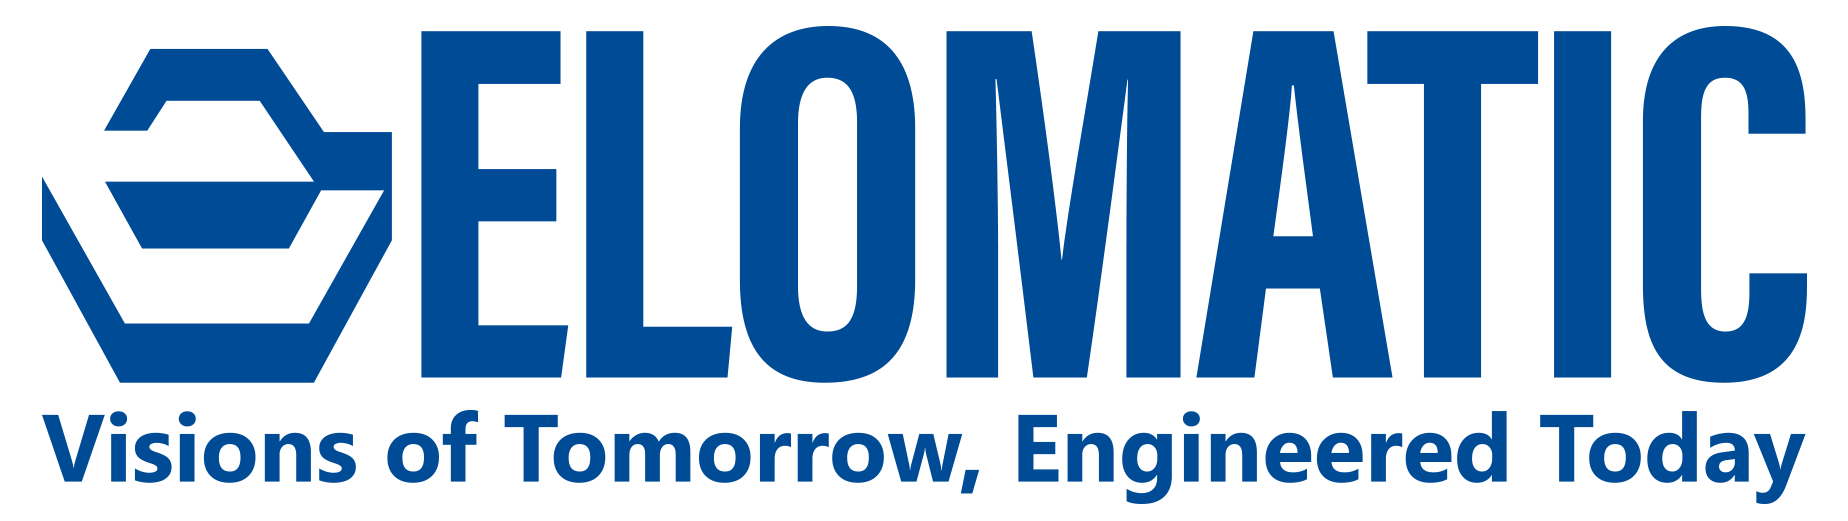 Elomatic logo and slogan - Visions onf tomorrow, Engineered Today.